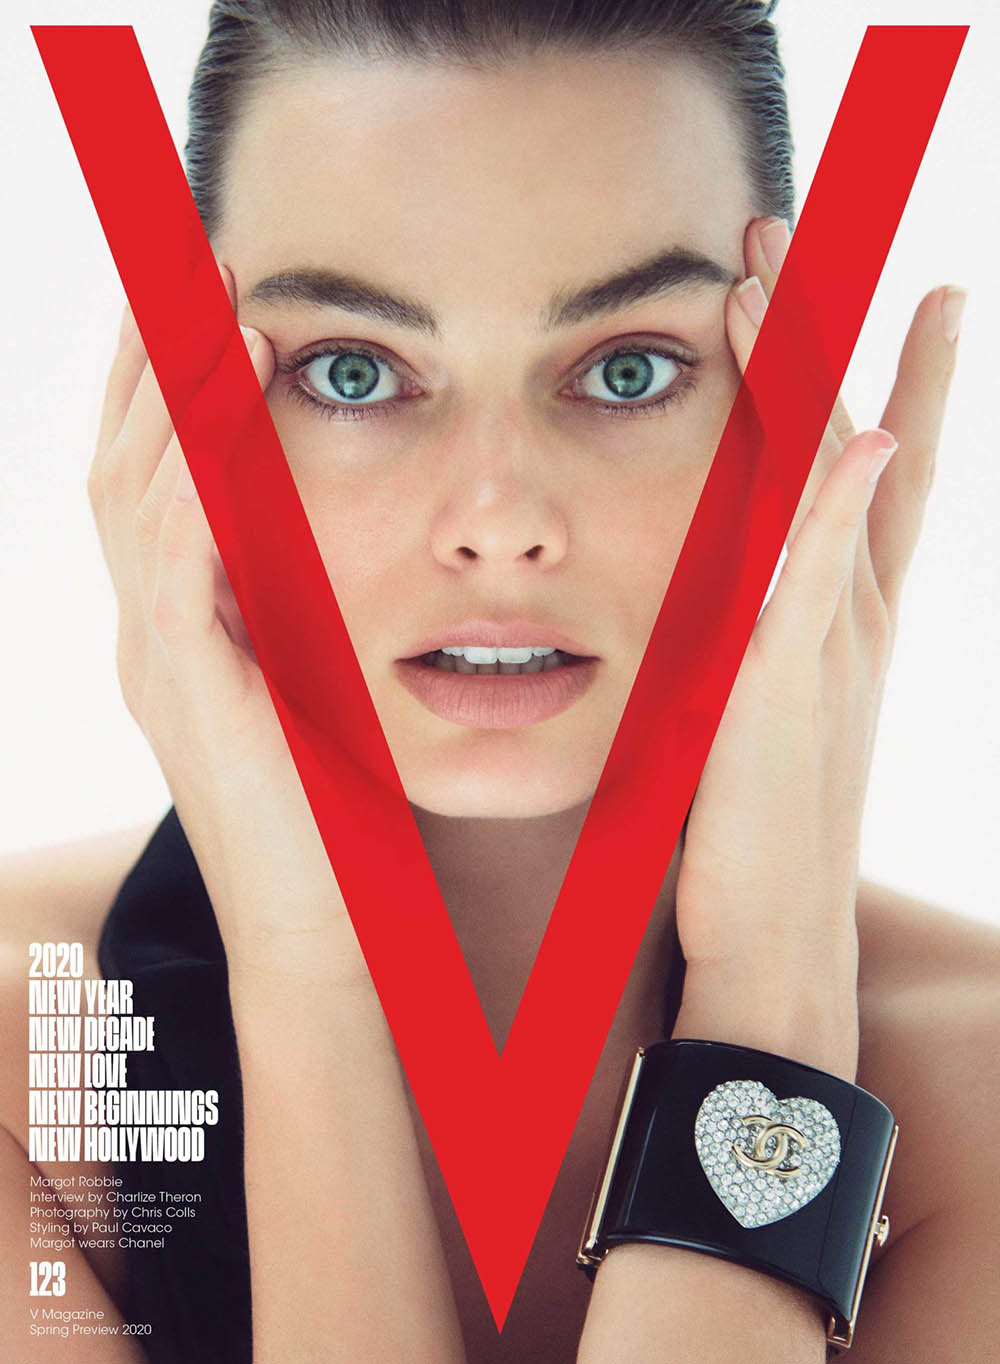 Margot Robbie covers V Magazine Spring 2020 by Chris Colls